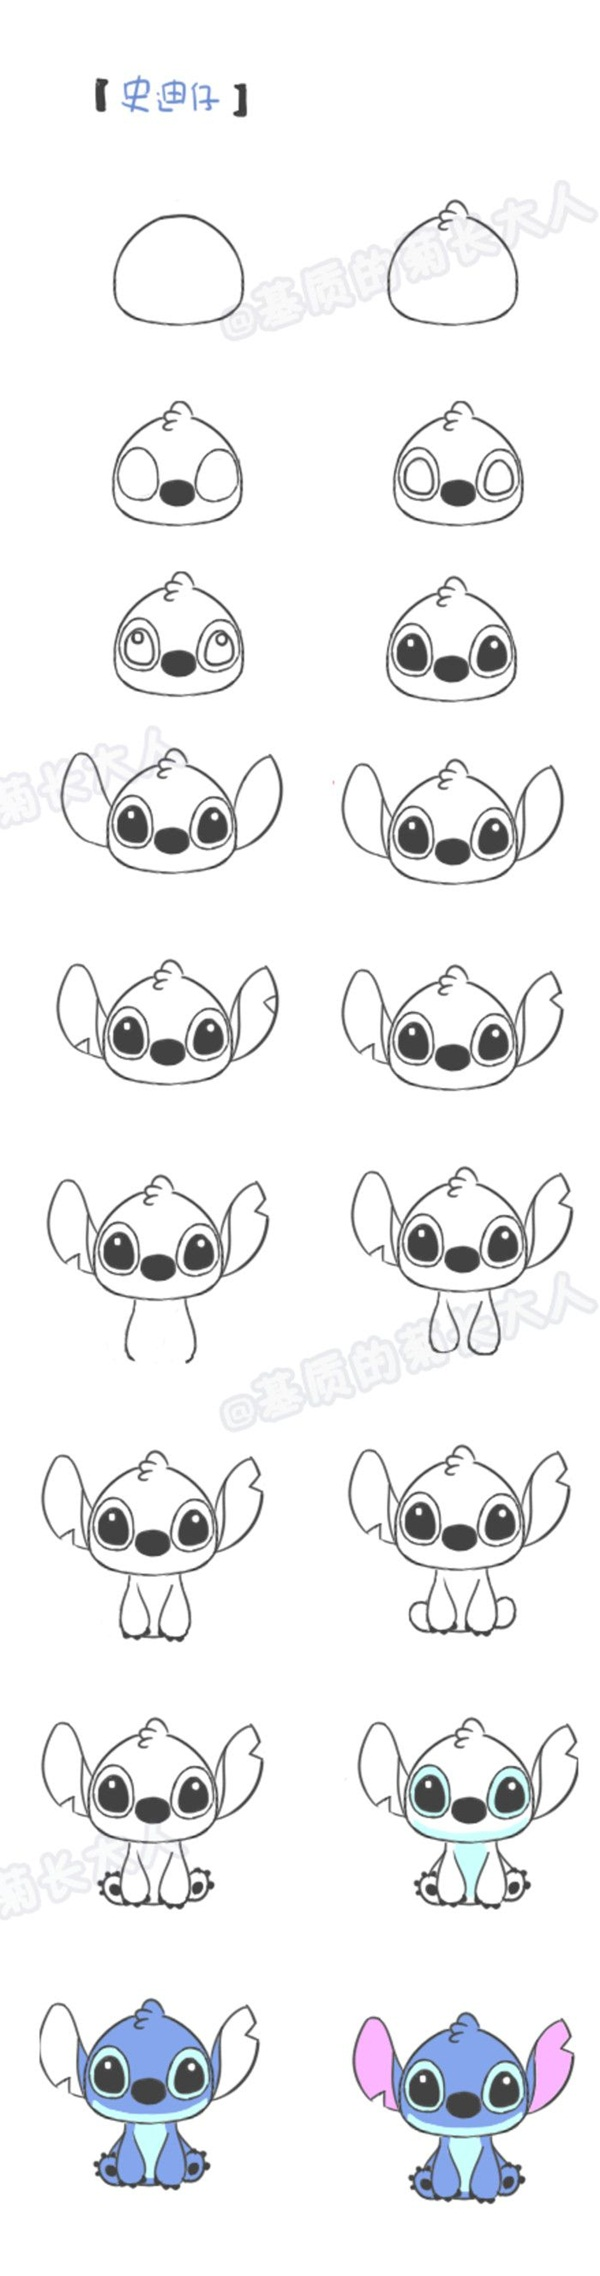 10 Best For Drawing Cartoon Characters Easy Cartoon Images